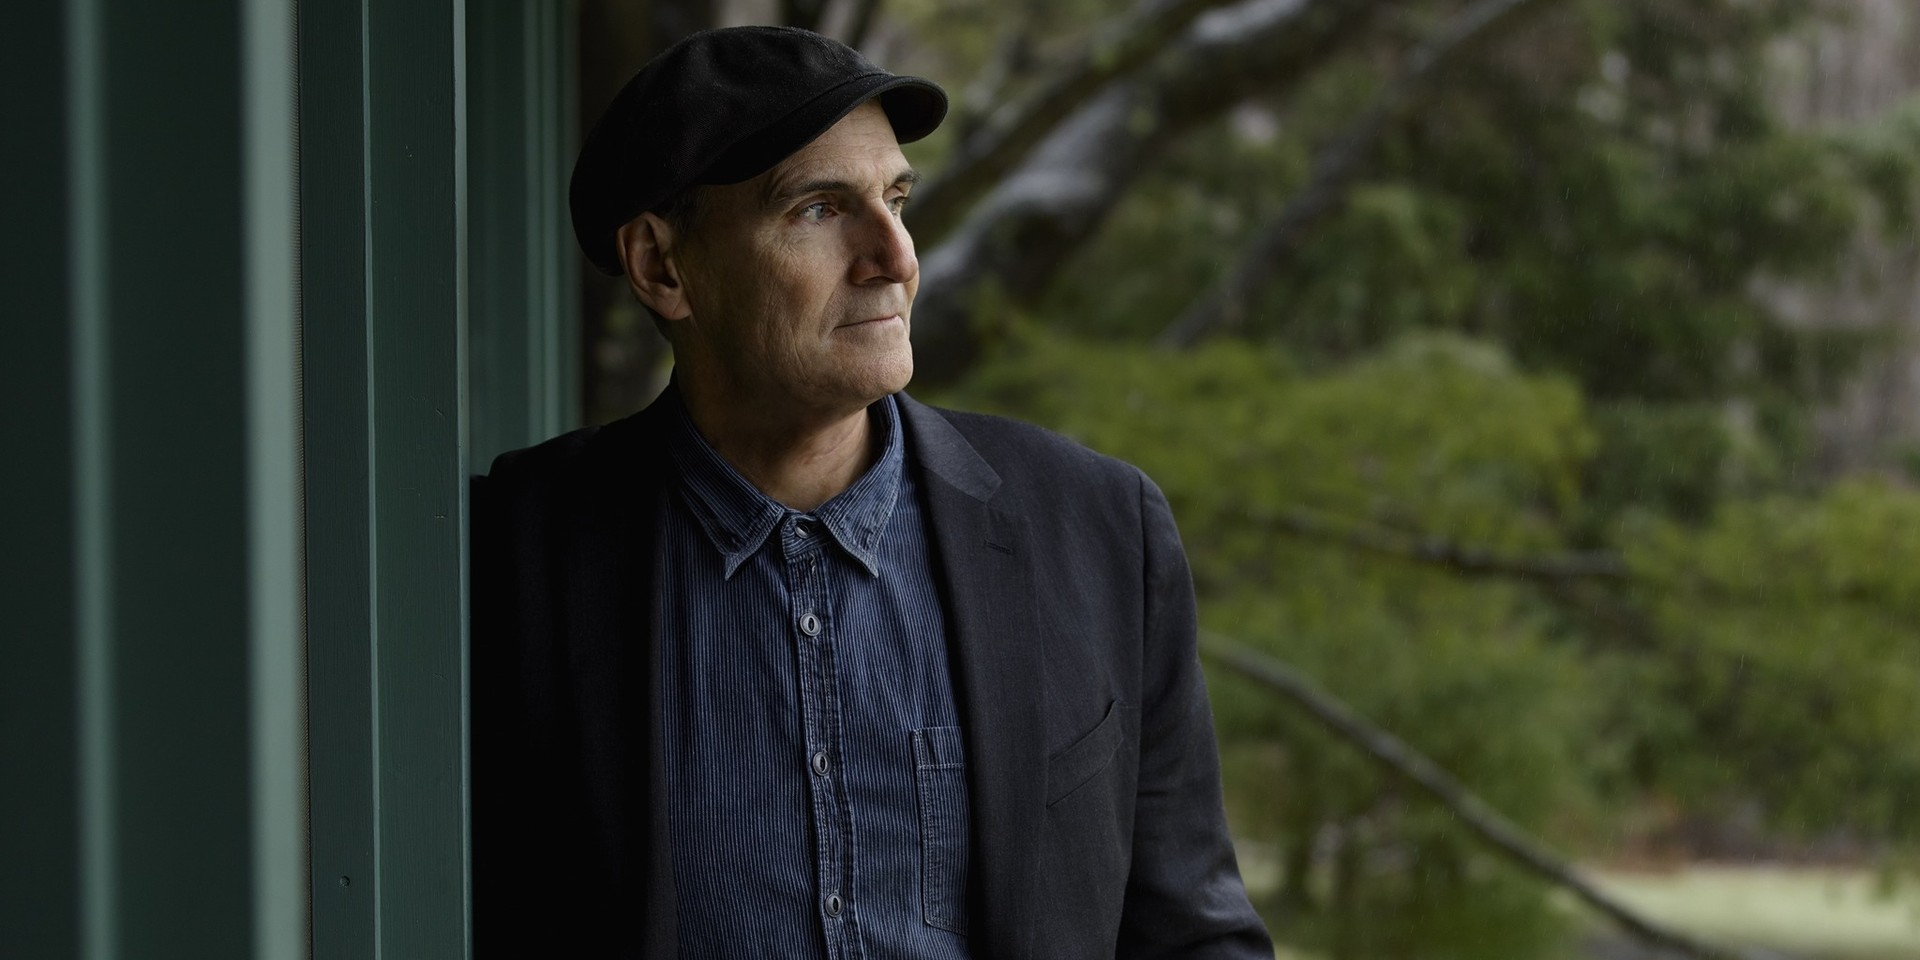 James Taylor makes a 'political stand', cancels Manila show